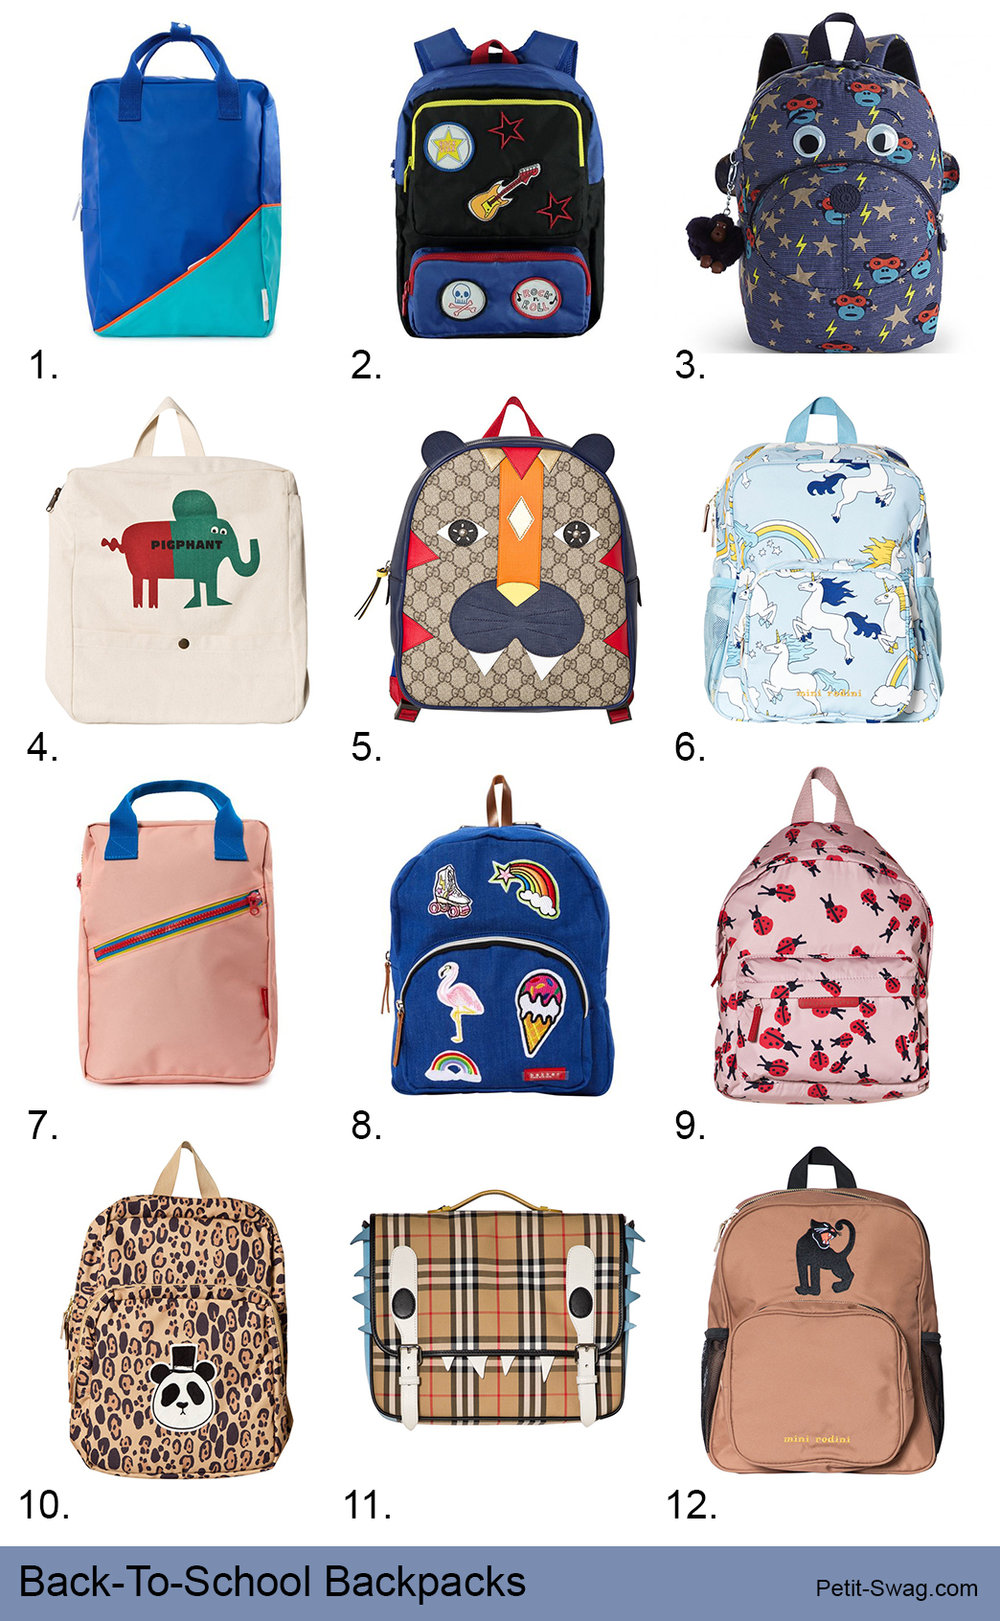 Back-To-School Backpacks | petit-swag.com